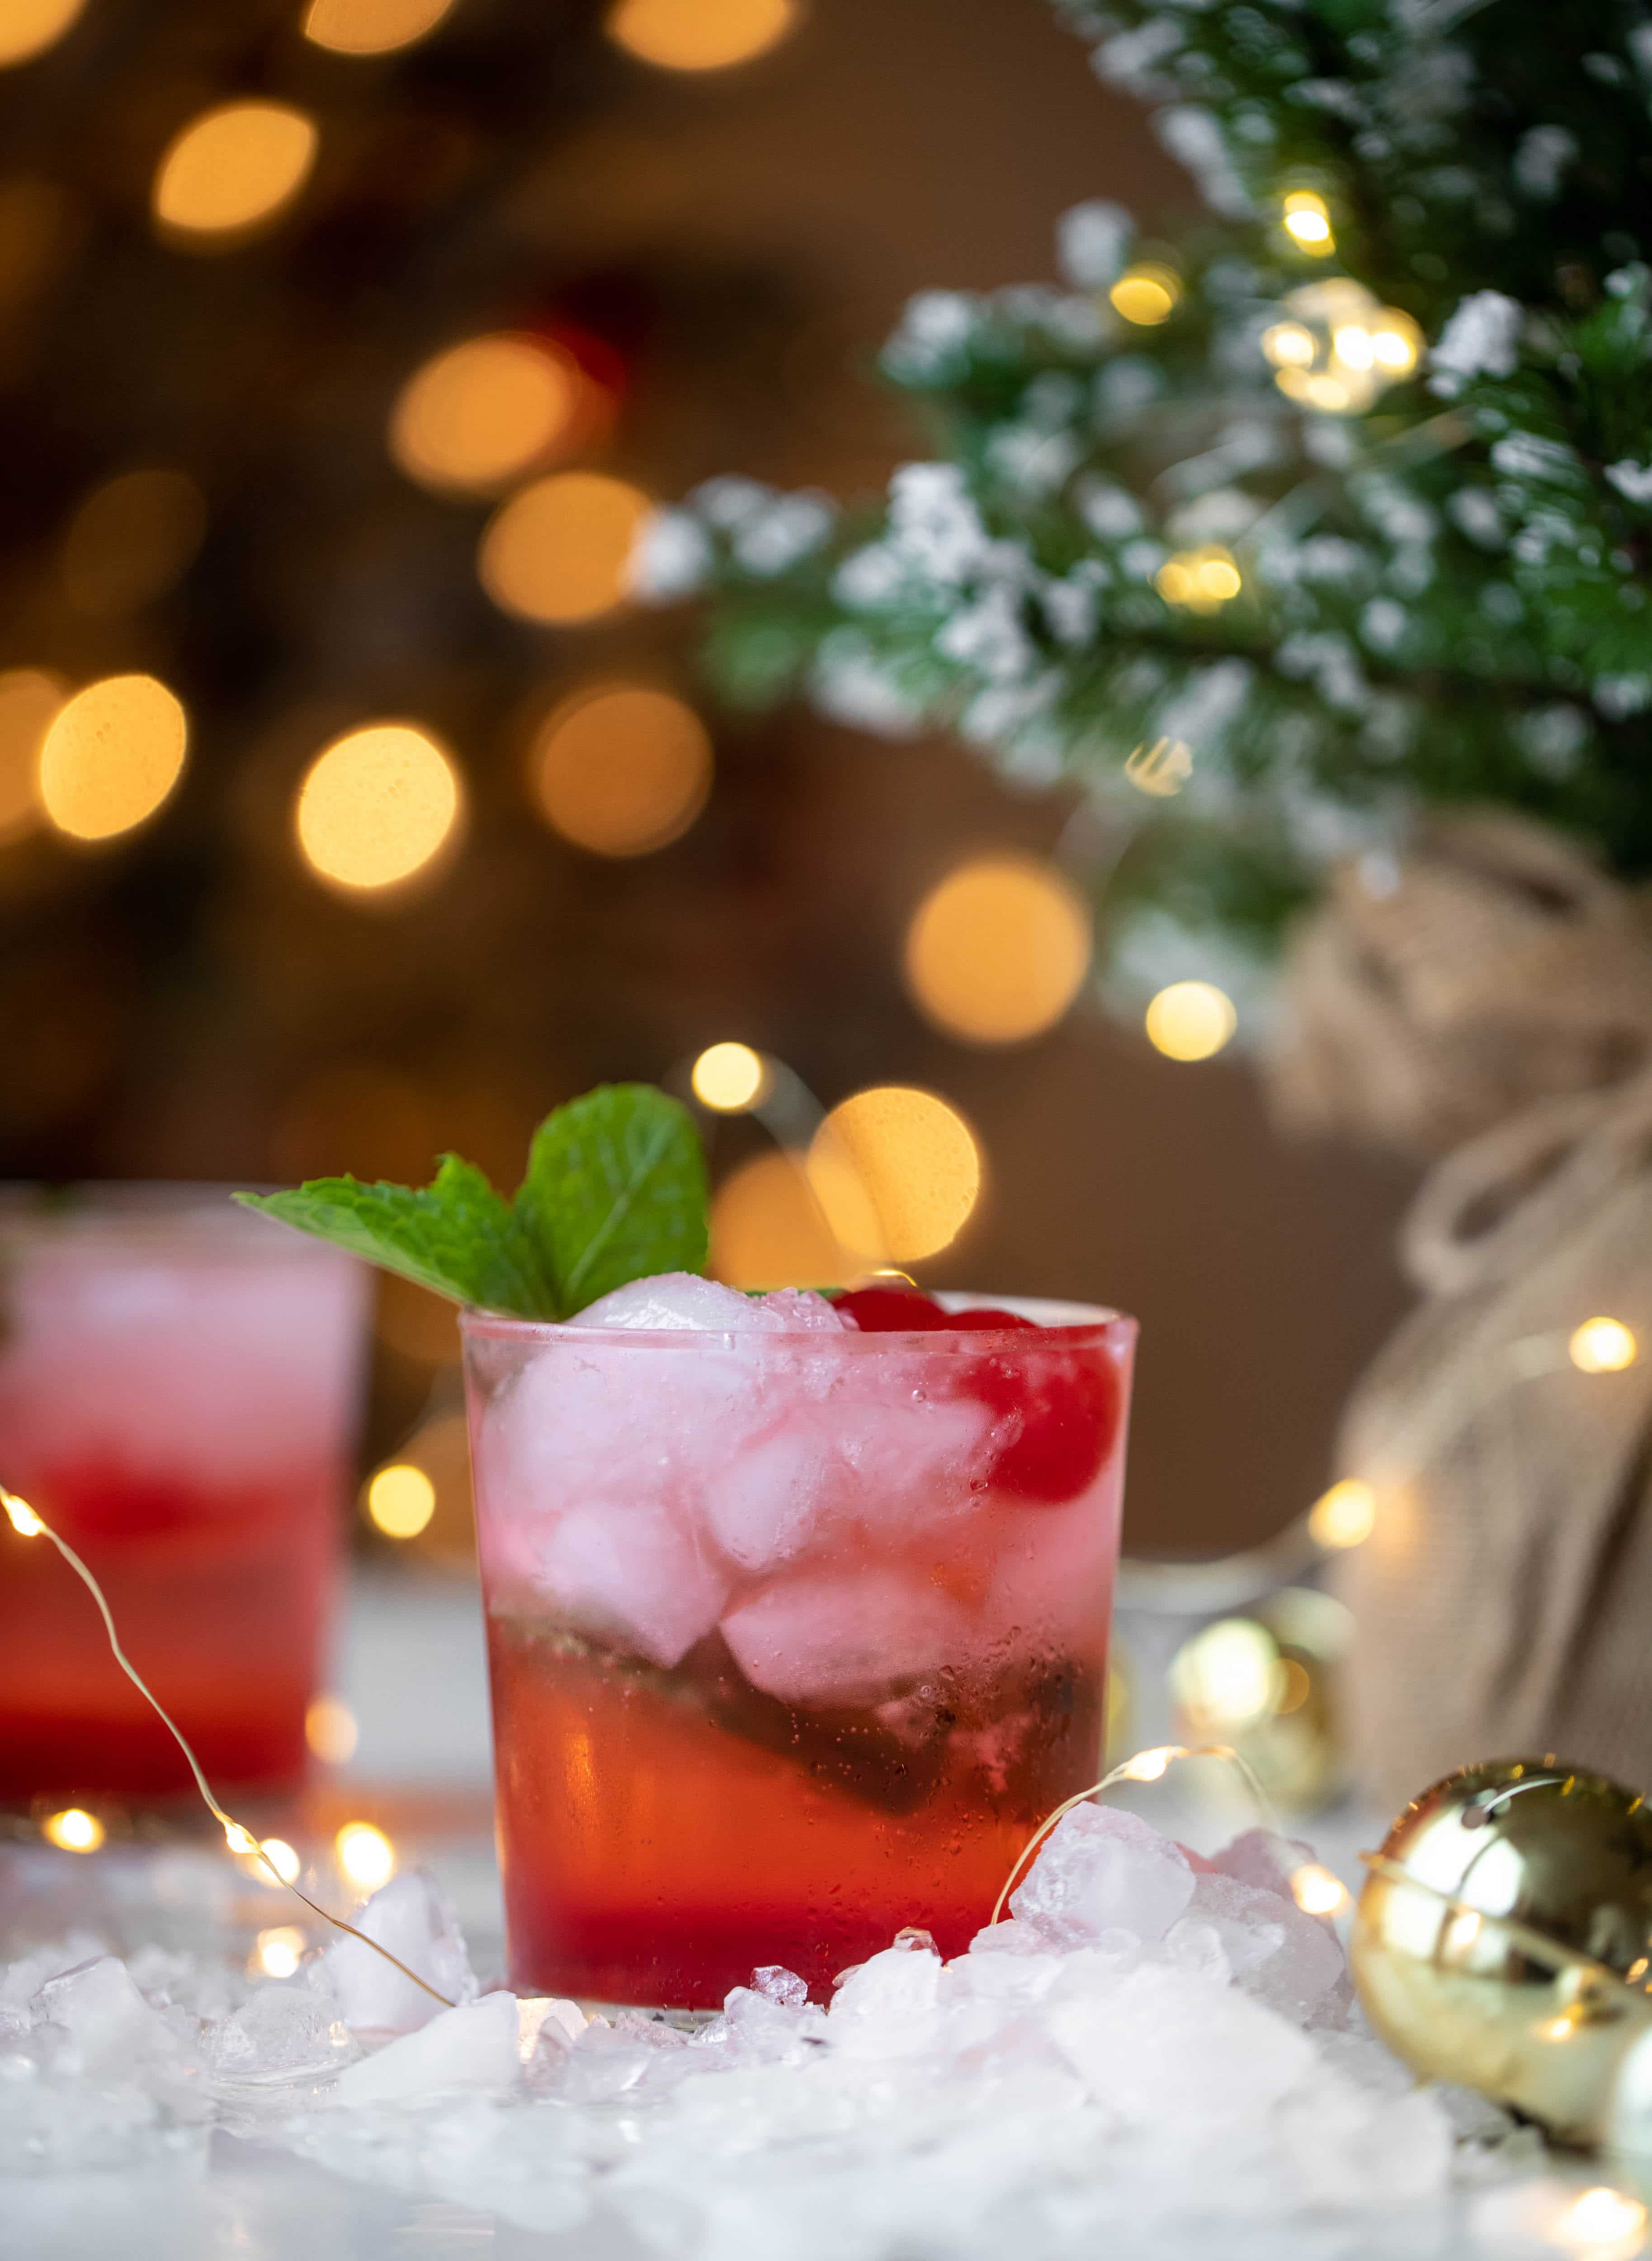 The merry cherry christmas cocktail is here! Vodka and cherries and mint, oh my! This is such a fun drink that can be made into a punch. It's delicious!